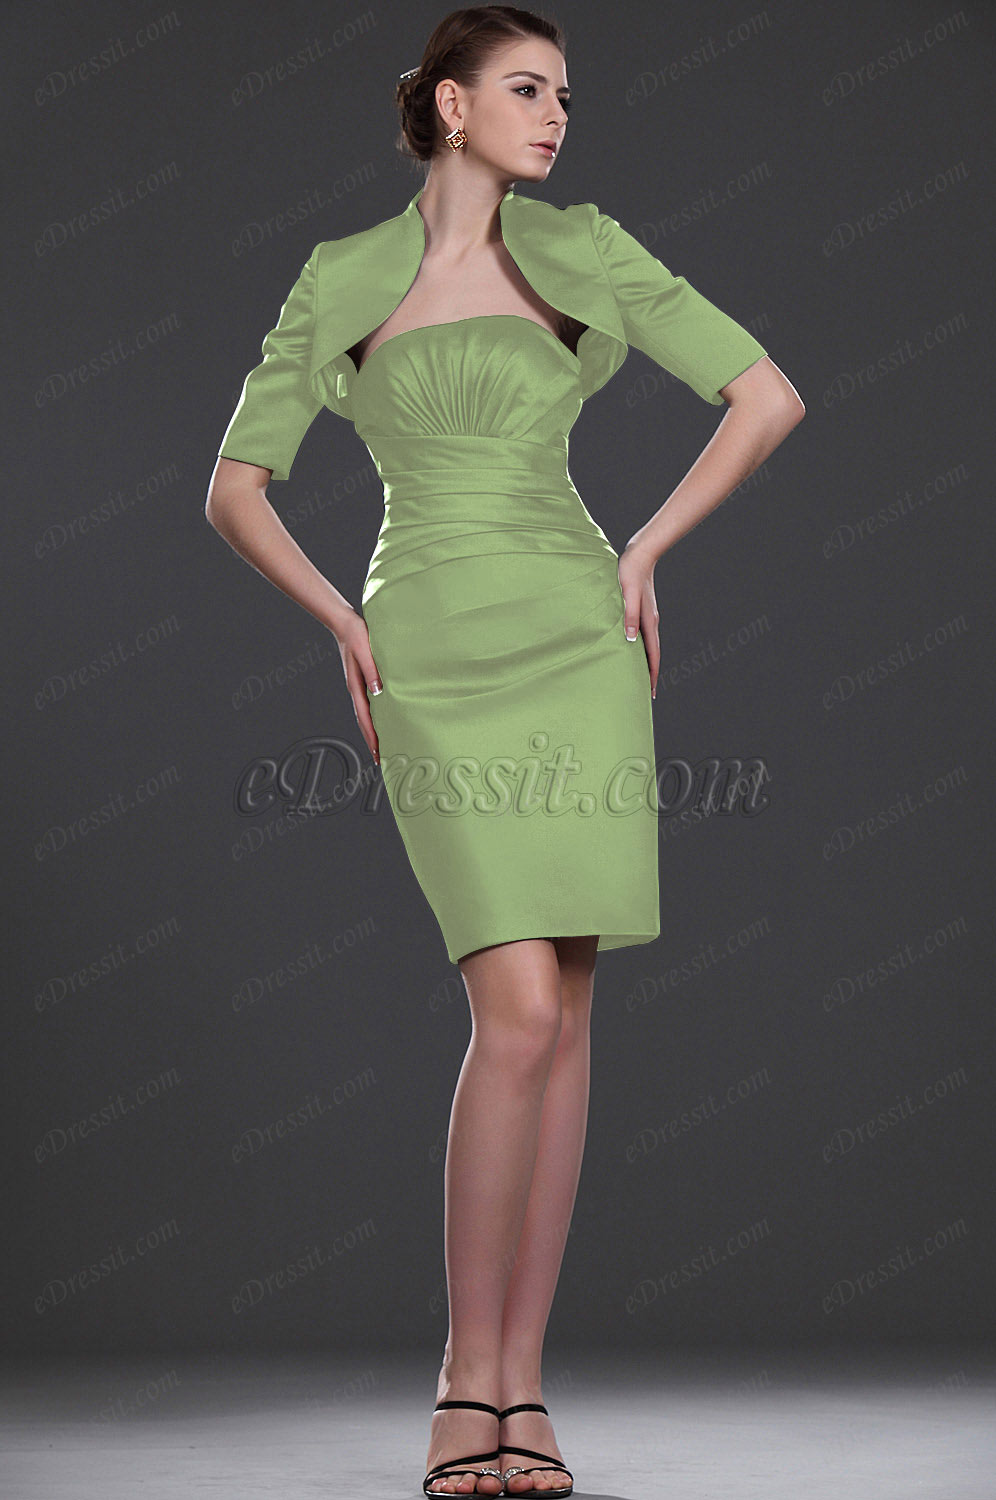 Clearance Sale !  eDressit Formal Dress with Bolero--Size UK18 (26112805b)